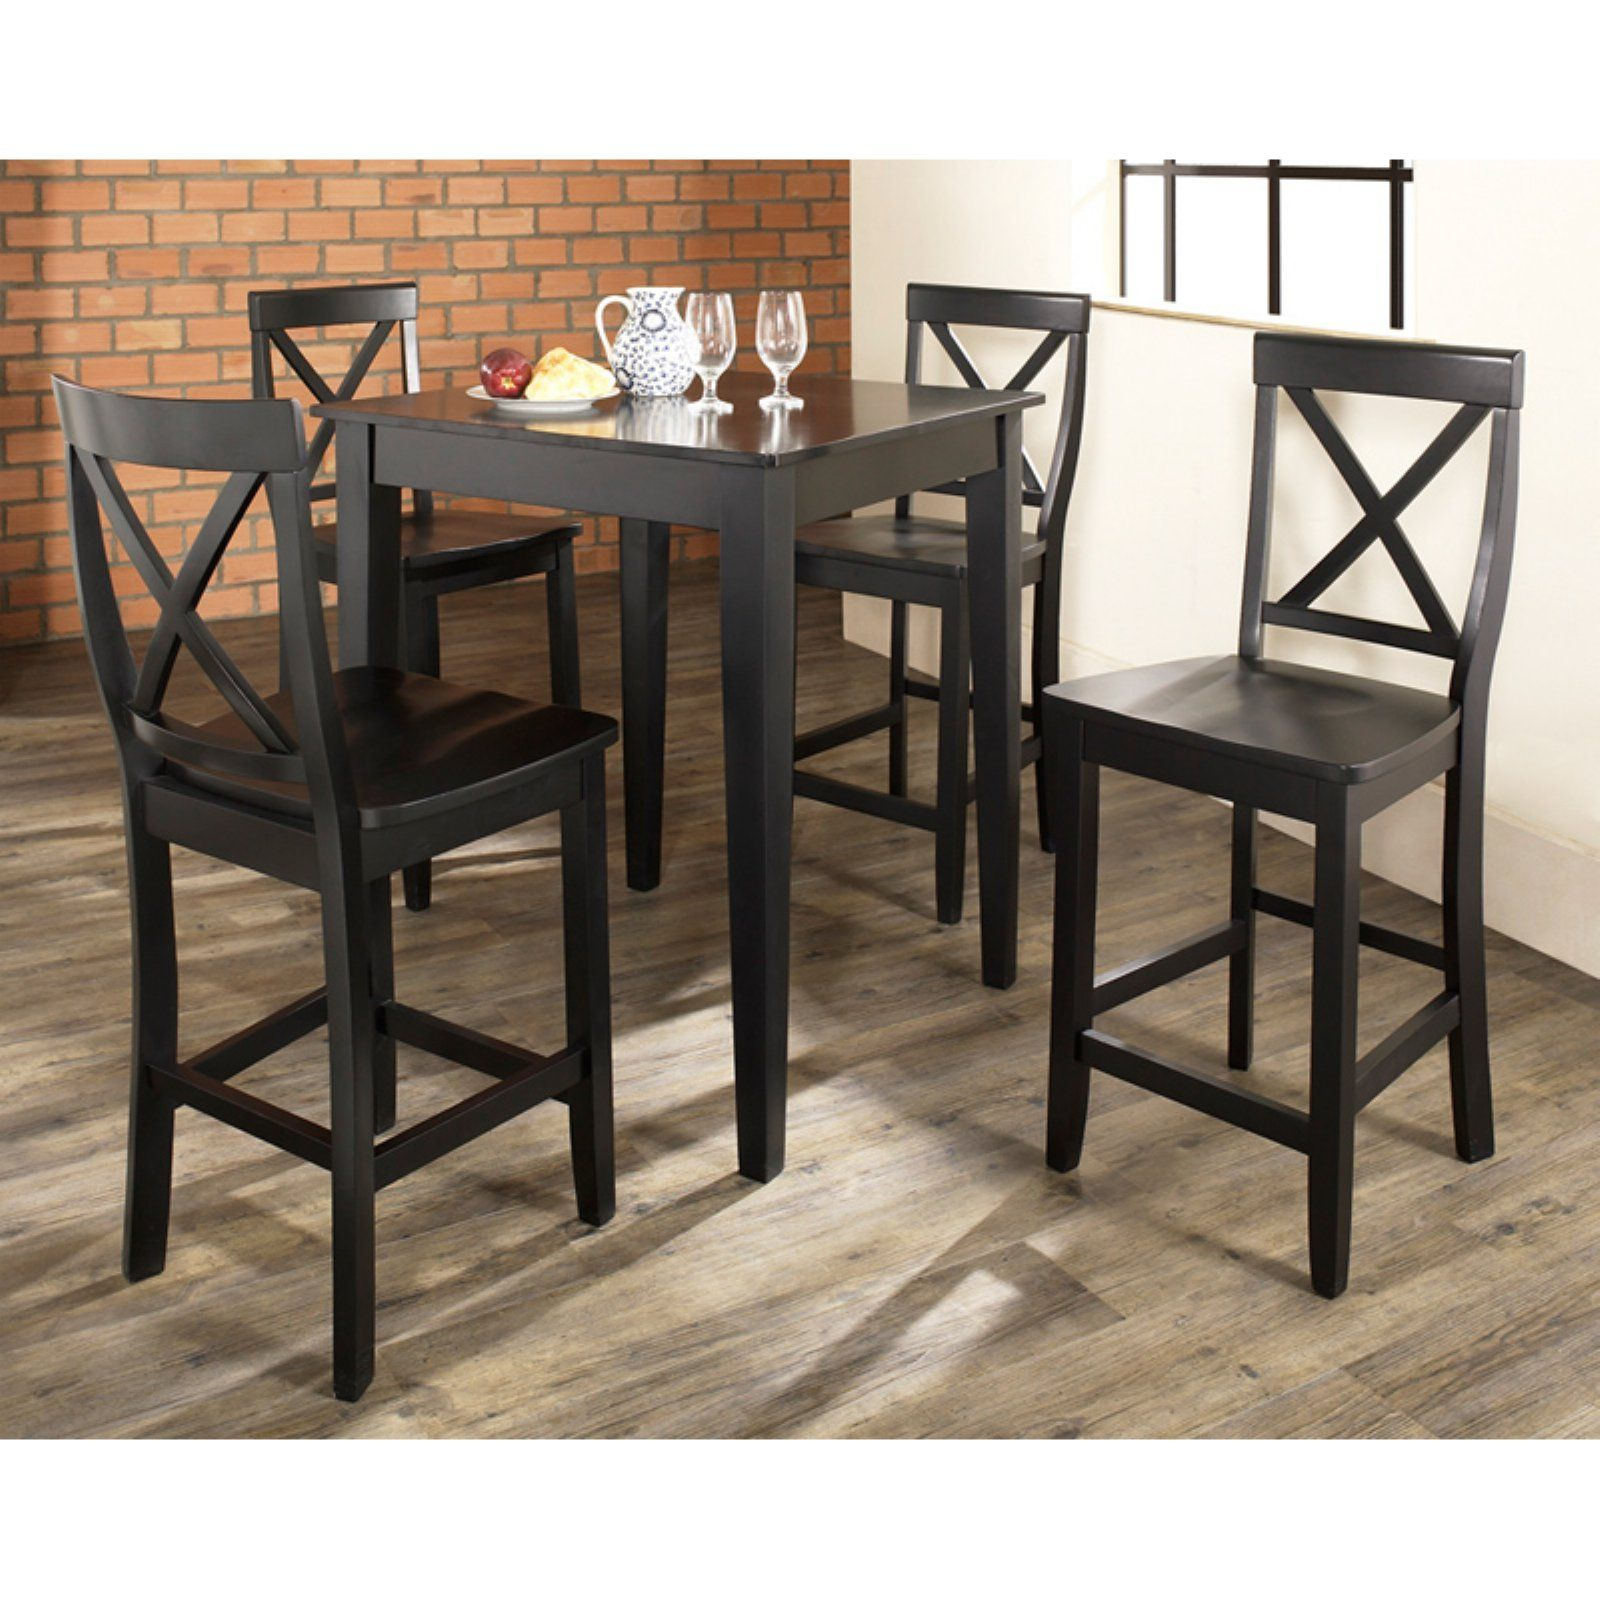 Crosley 9 Piece Pub Dining Set with Tapered Leg and X Back Stools ...